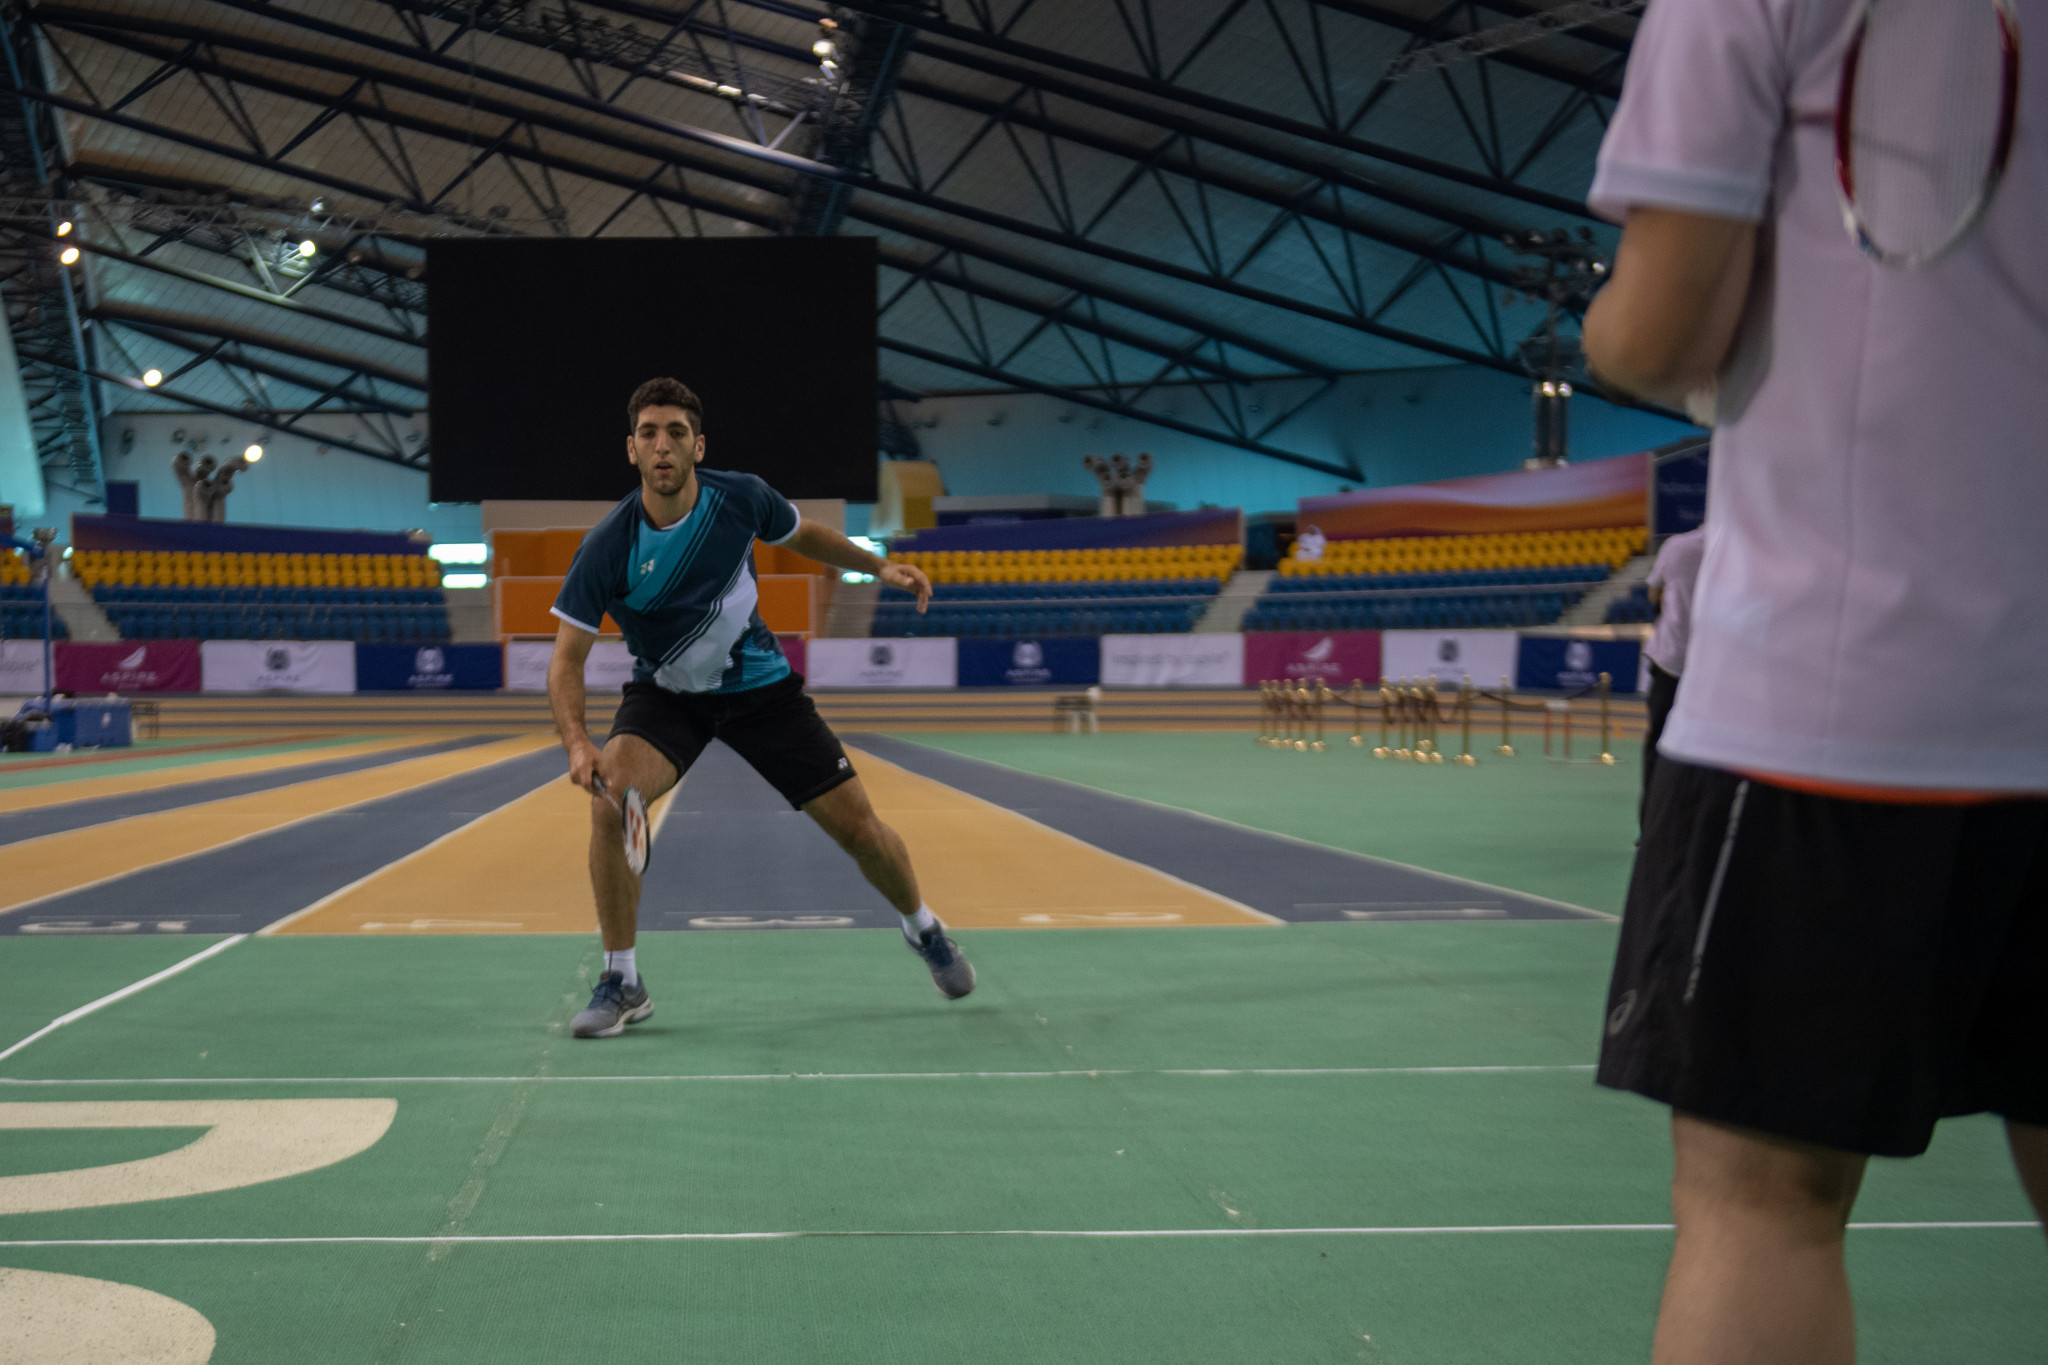 All 29 members of the Olympic Refugee Team trained in preparation for Tokyo 2020 at the Aspire Zone in Doha ©QOC